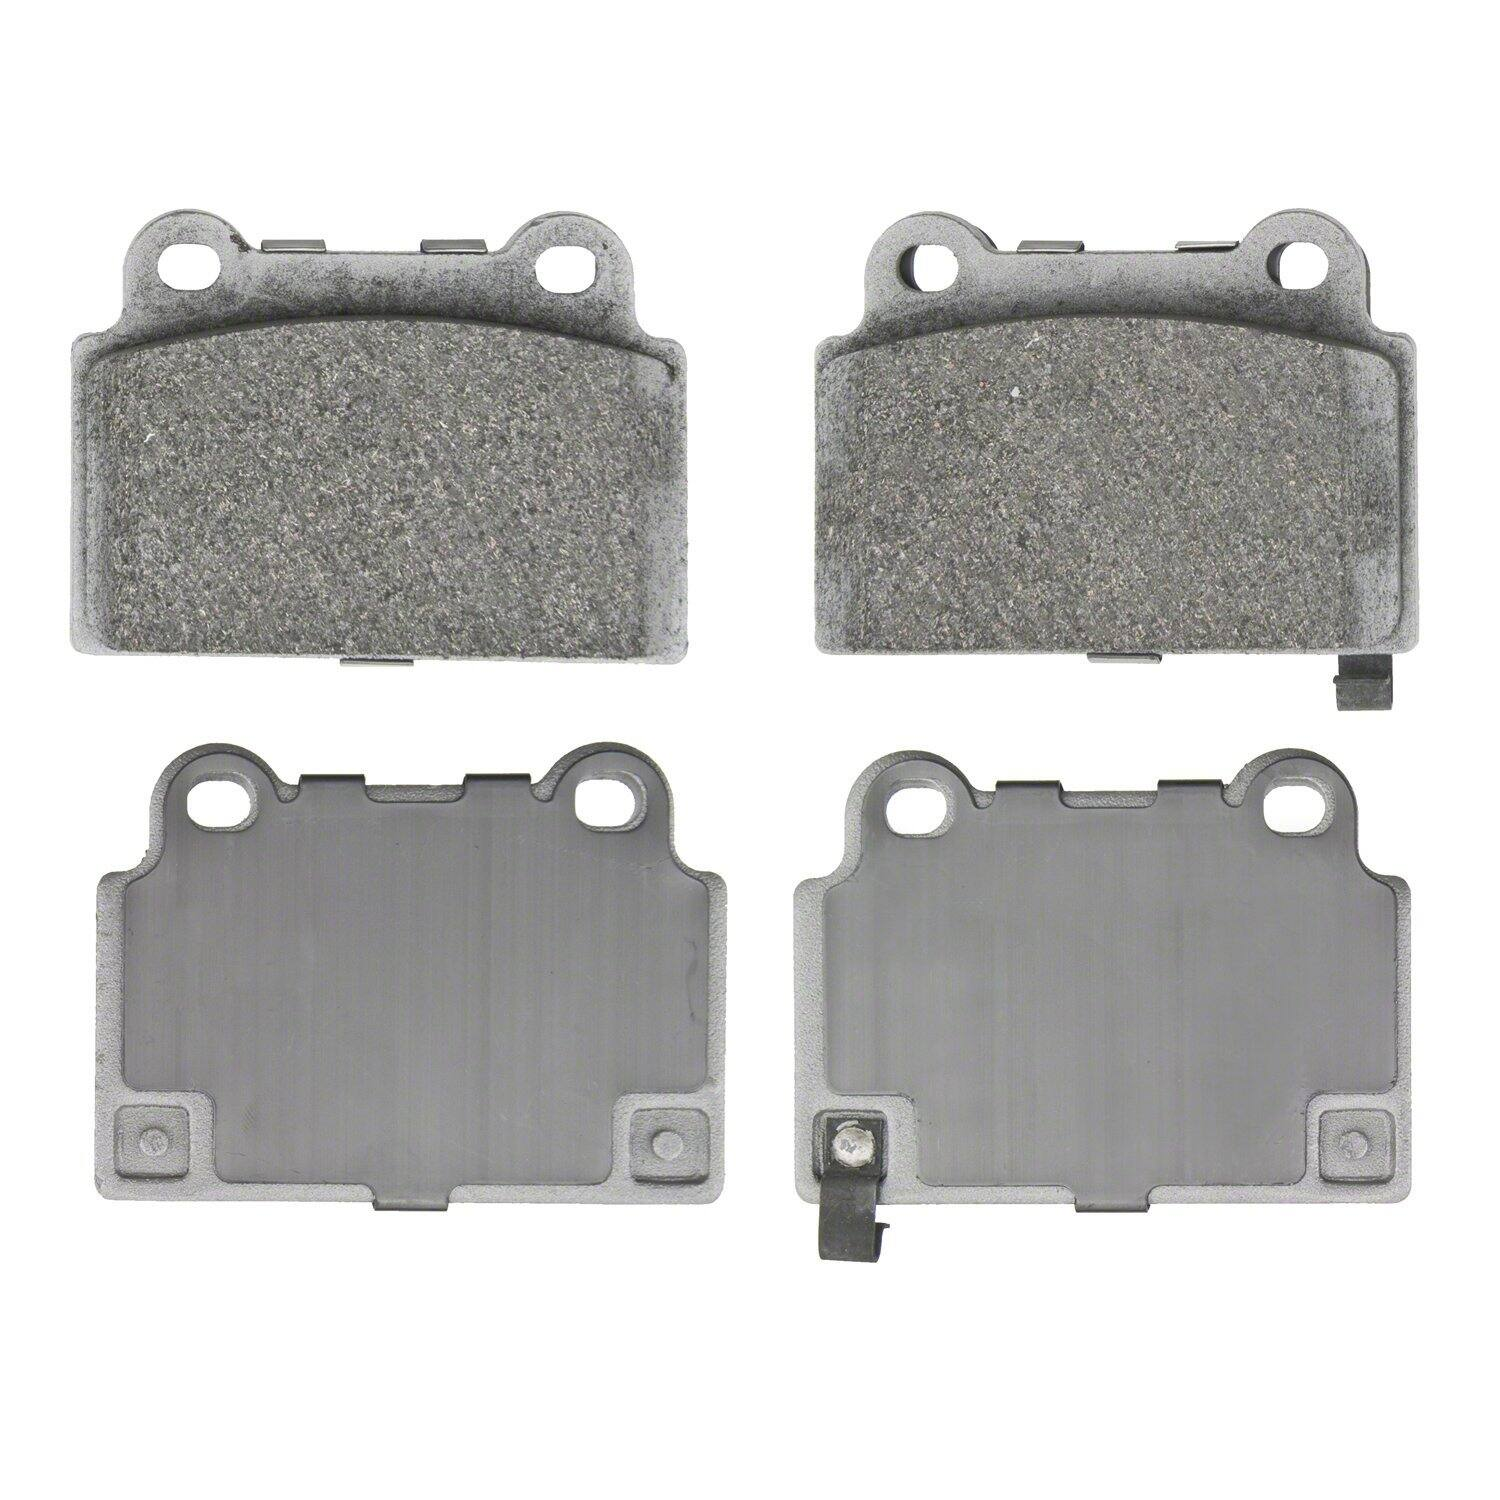 Wagner ThermoQuiet Brake Pads: Up to $30 Rebate on Brake Sets  from Free after $15 Rebate & More